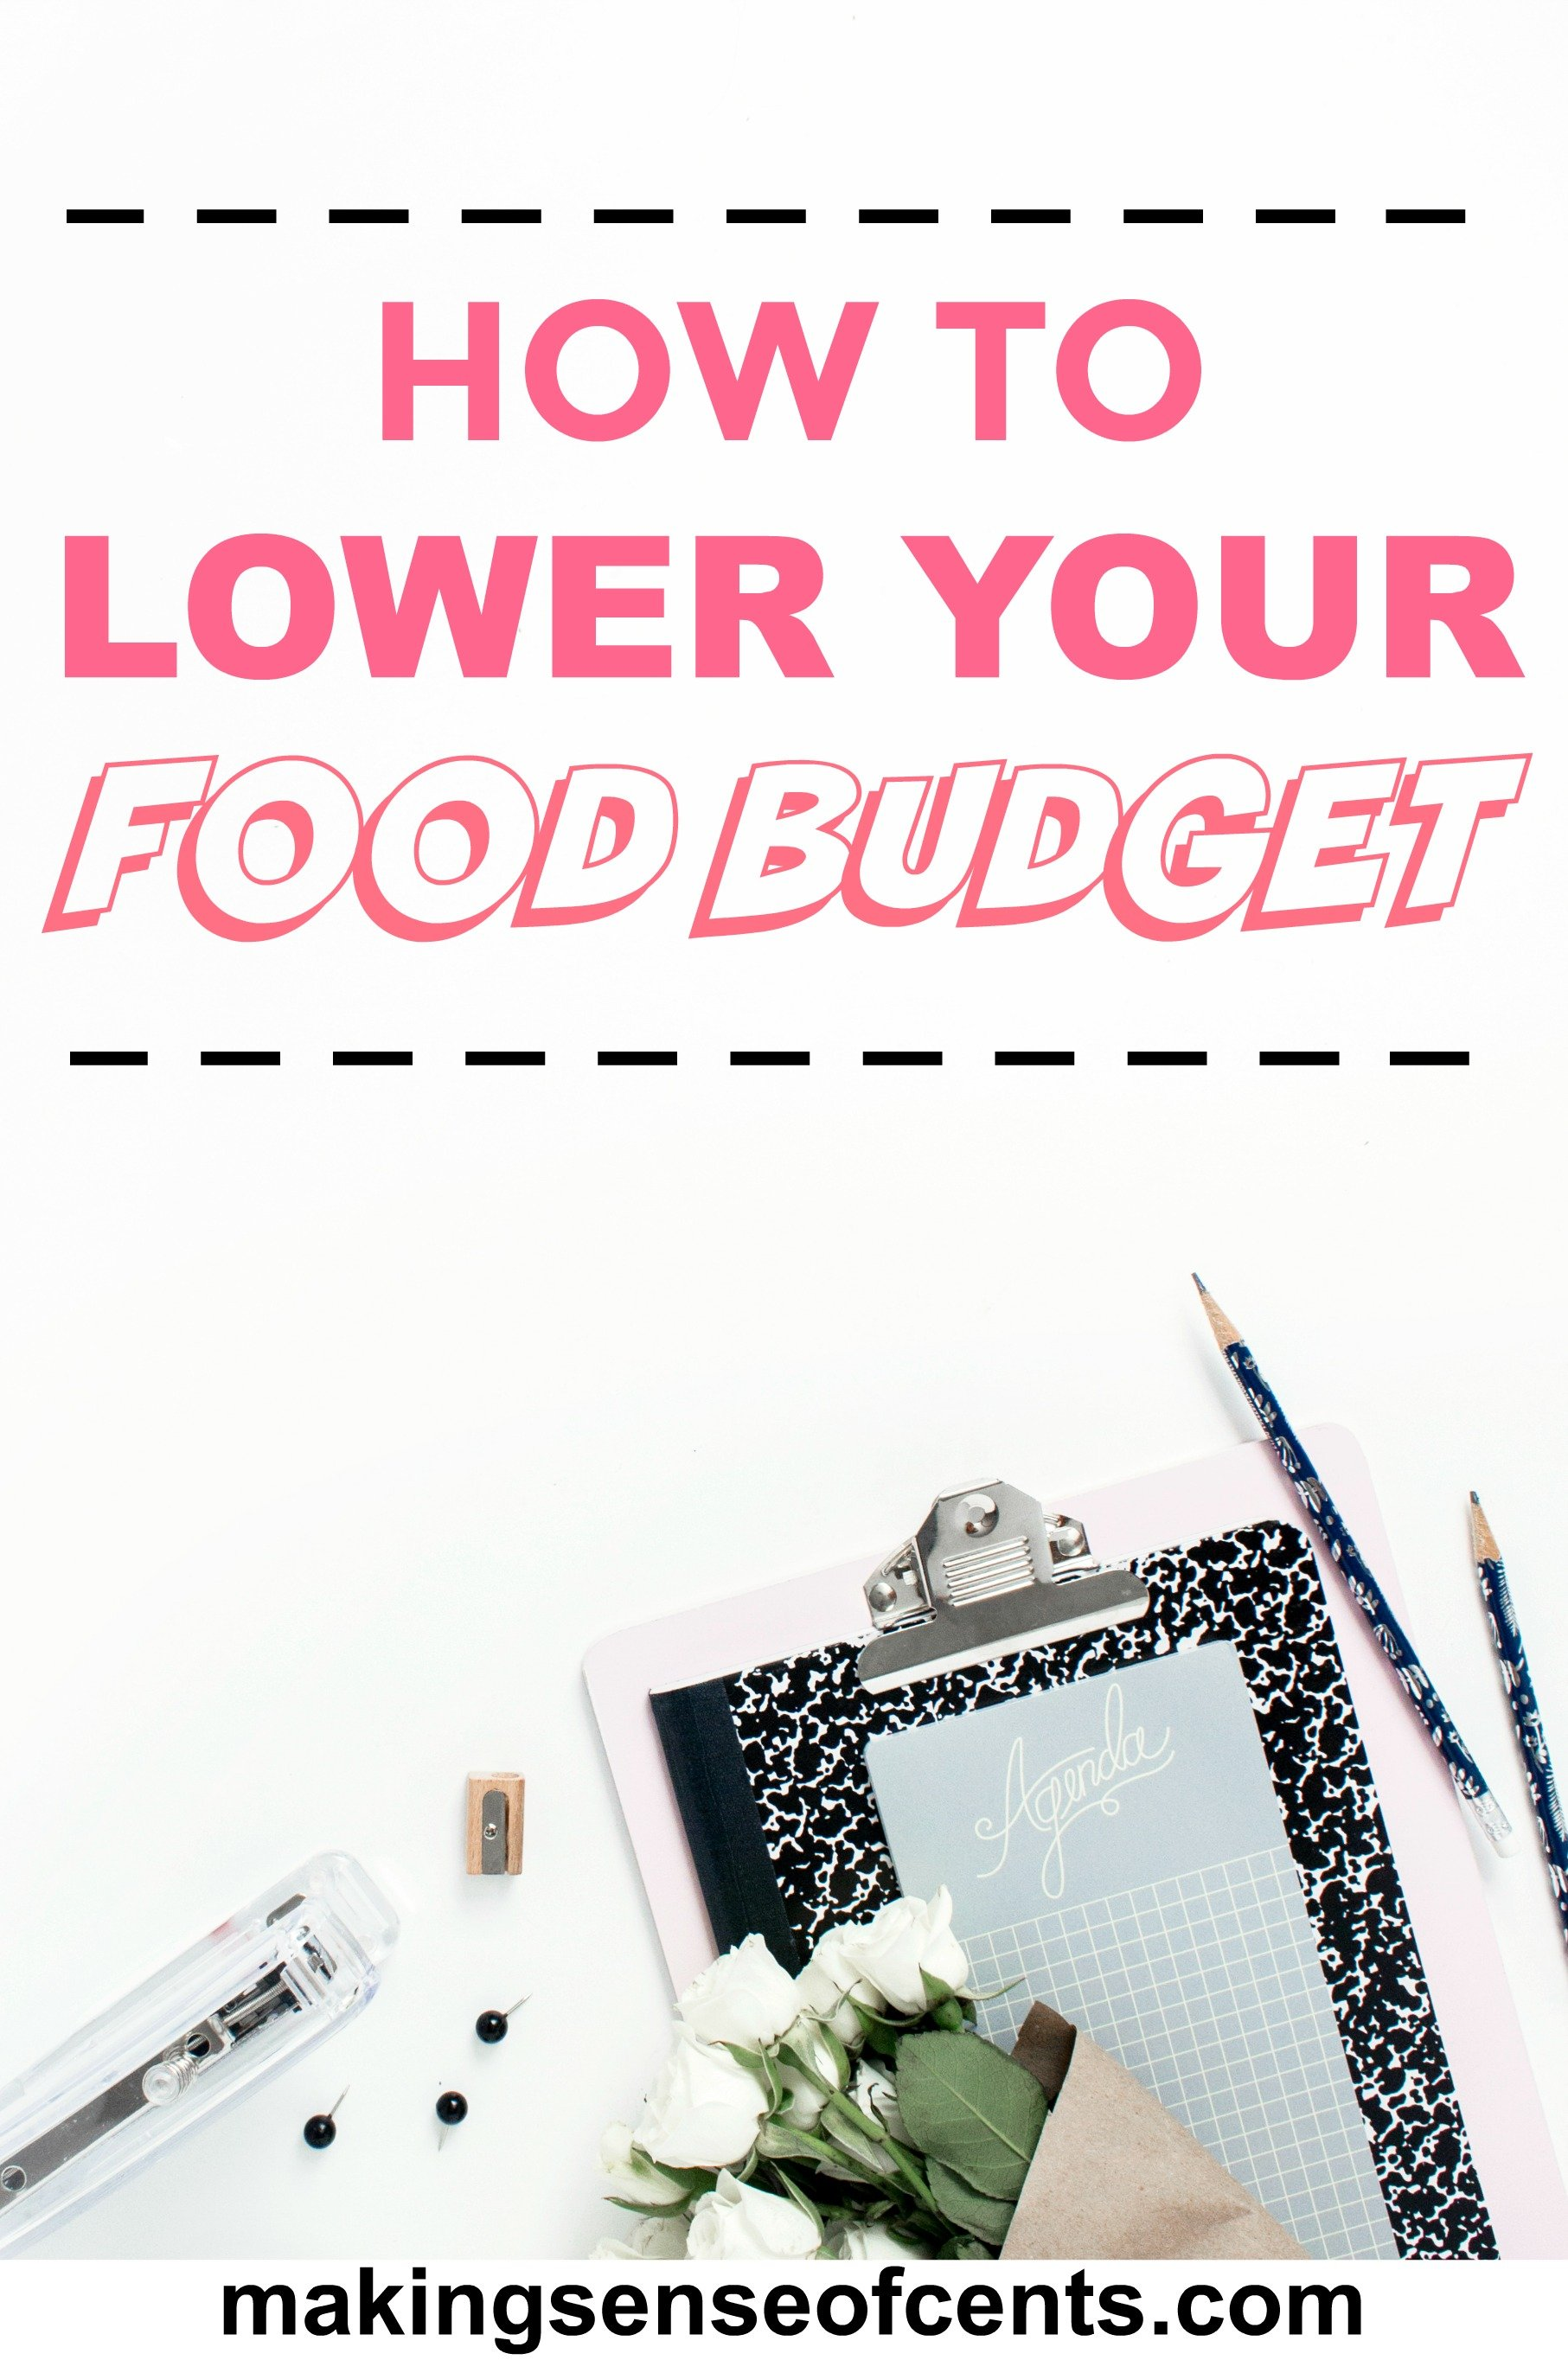 How To Lower Your Food Budget